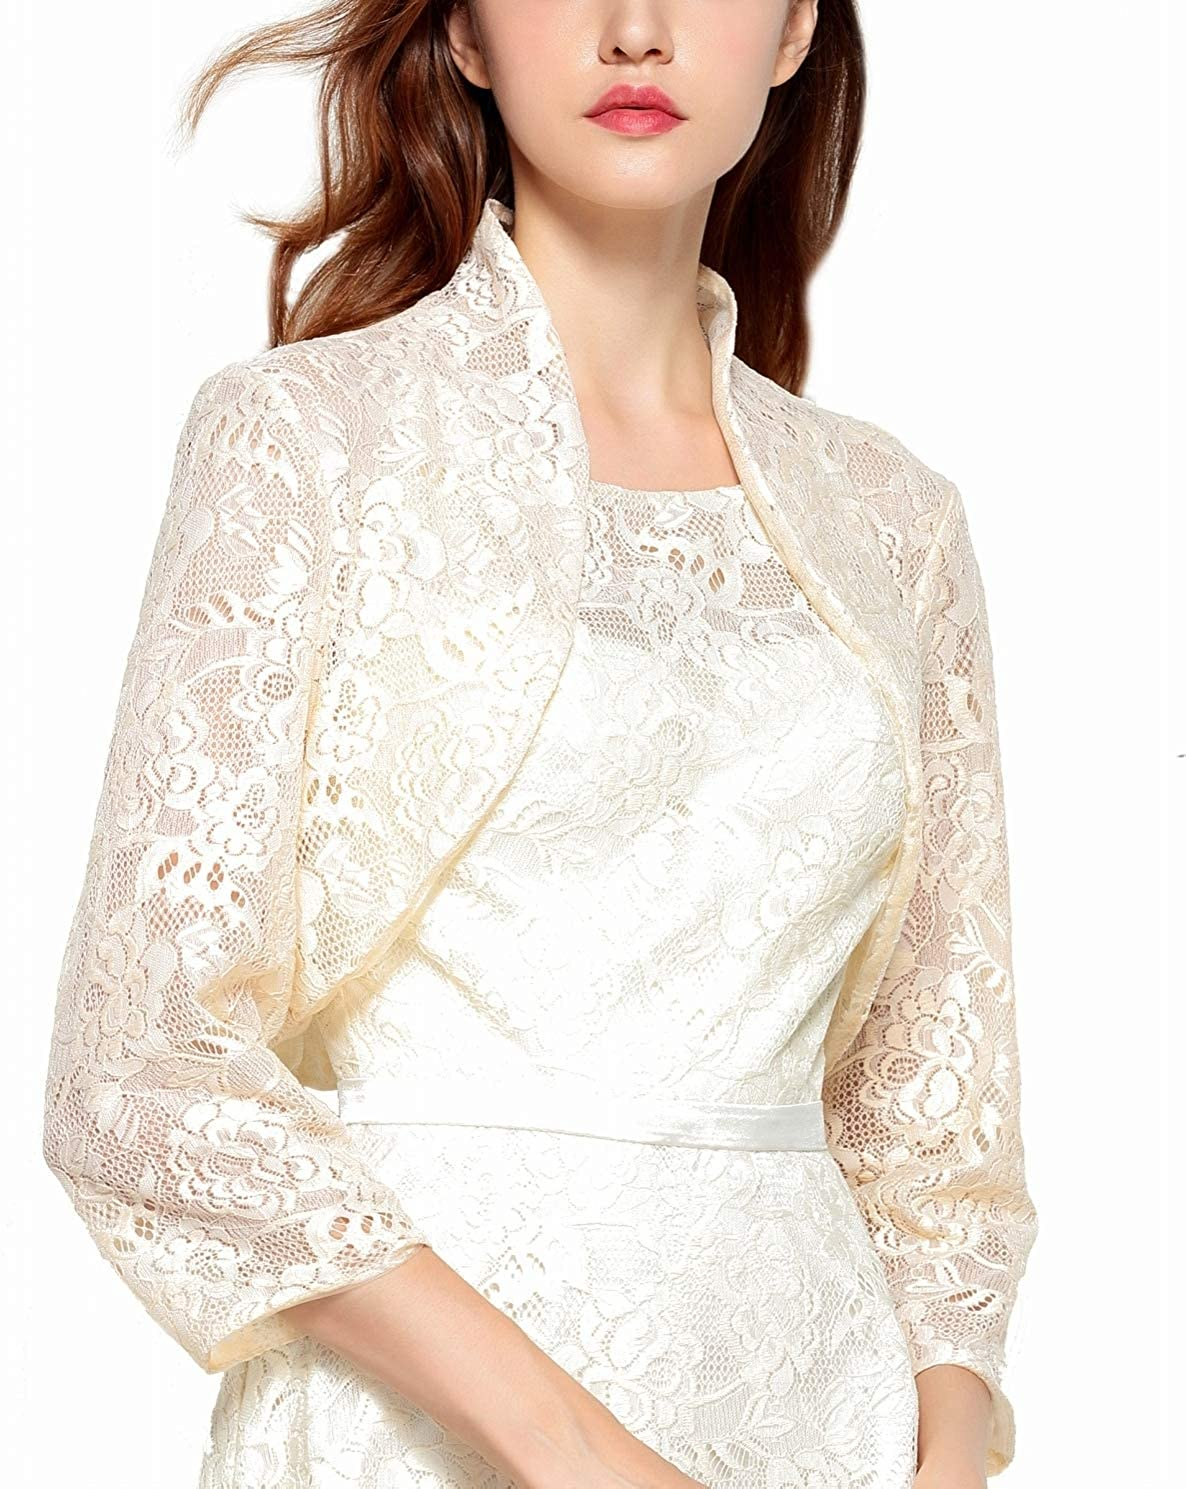 Chic Queen Women's Long Sleeve Floral Lace Shrug Bolero Cardigan